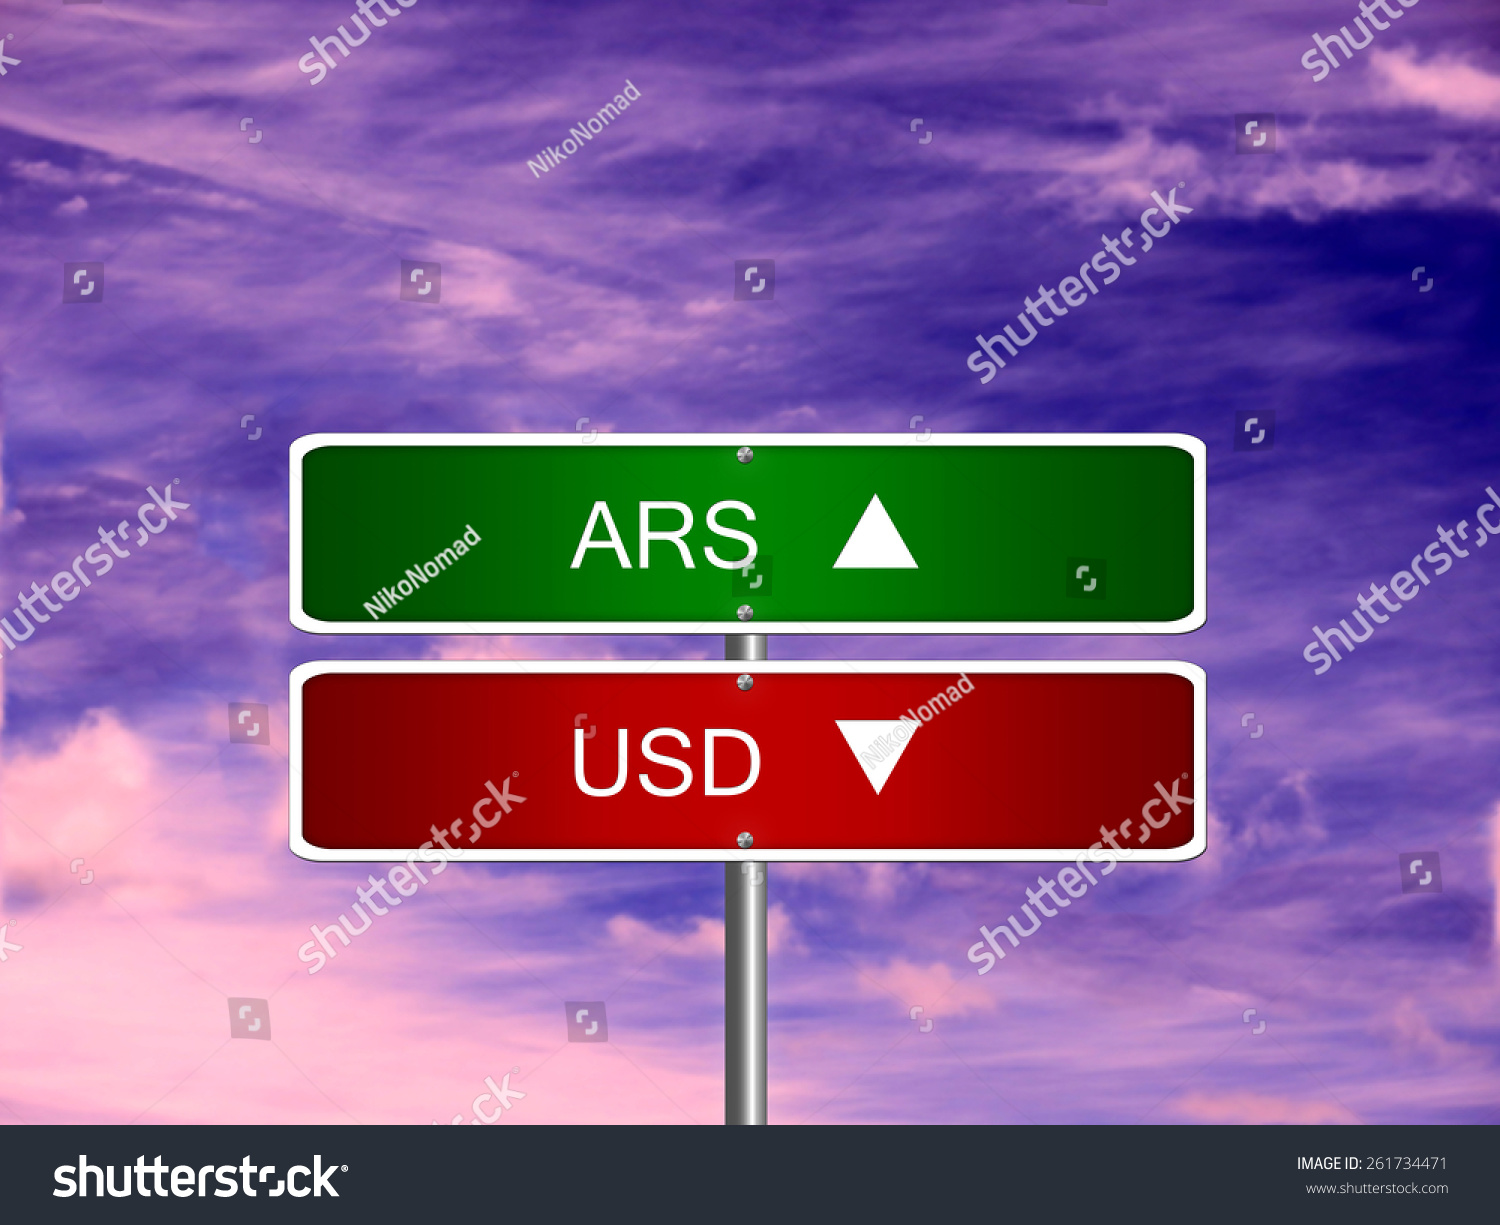 Royalty Free Ars Usd Argentina Argentine Peso Us 261734471 Stock